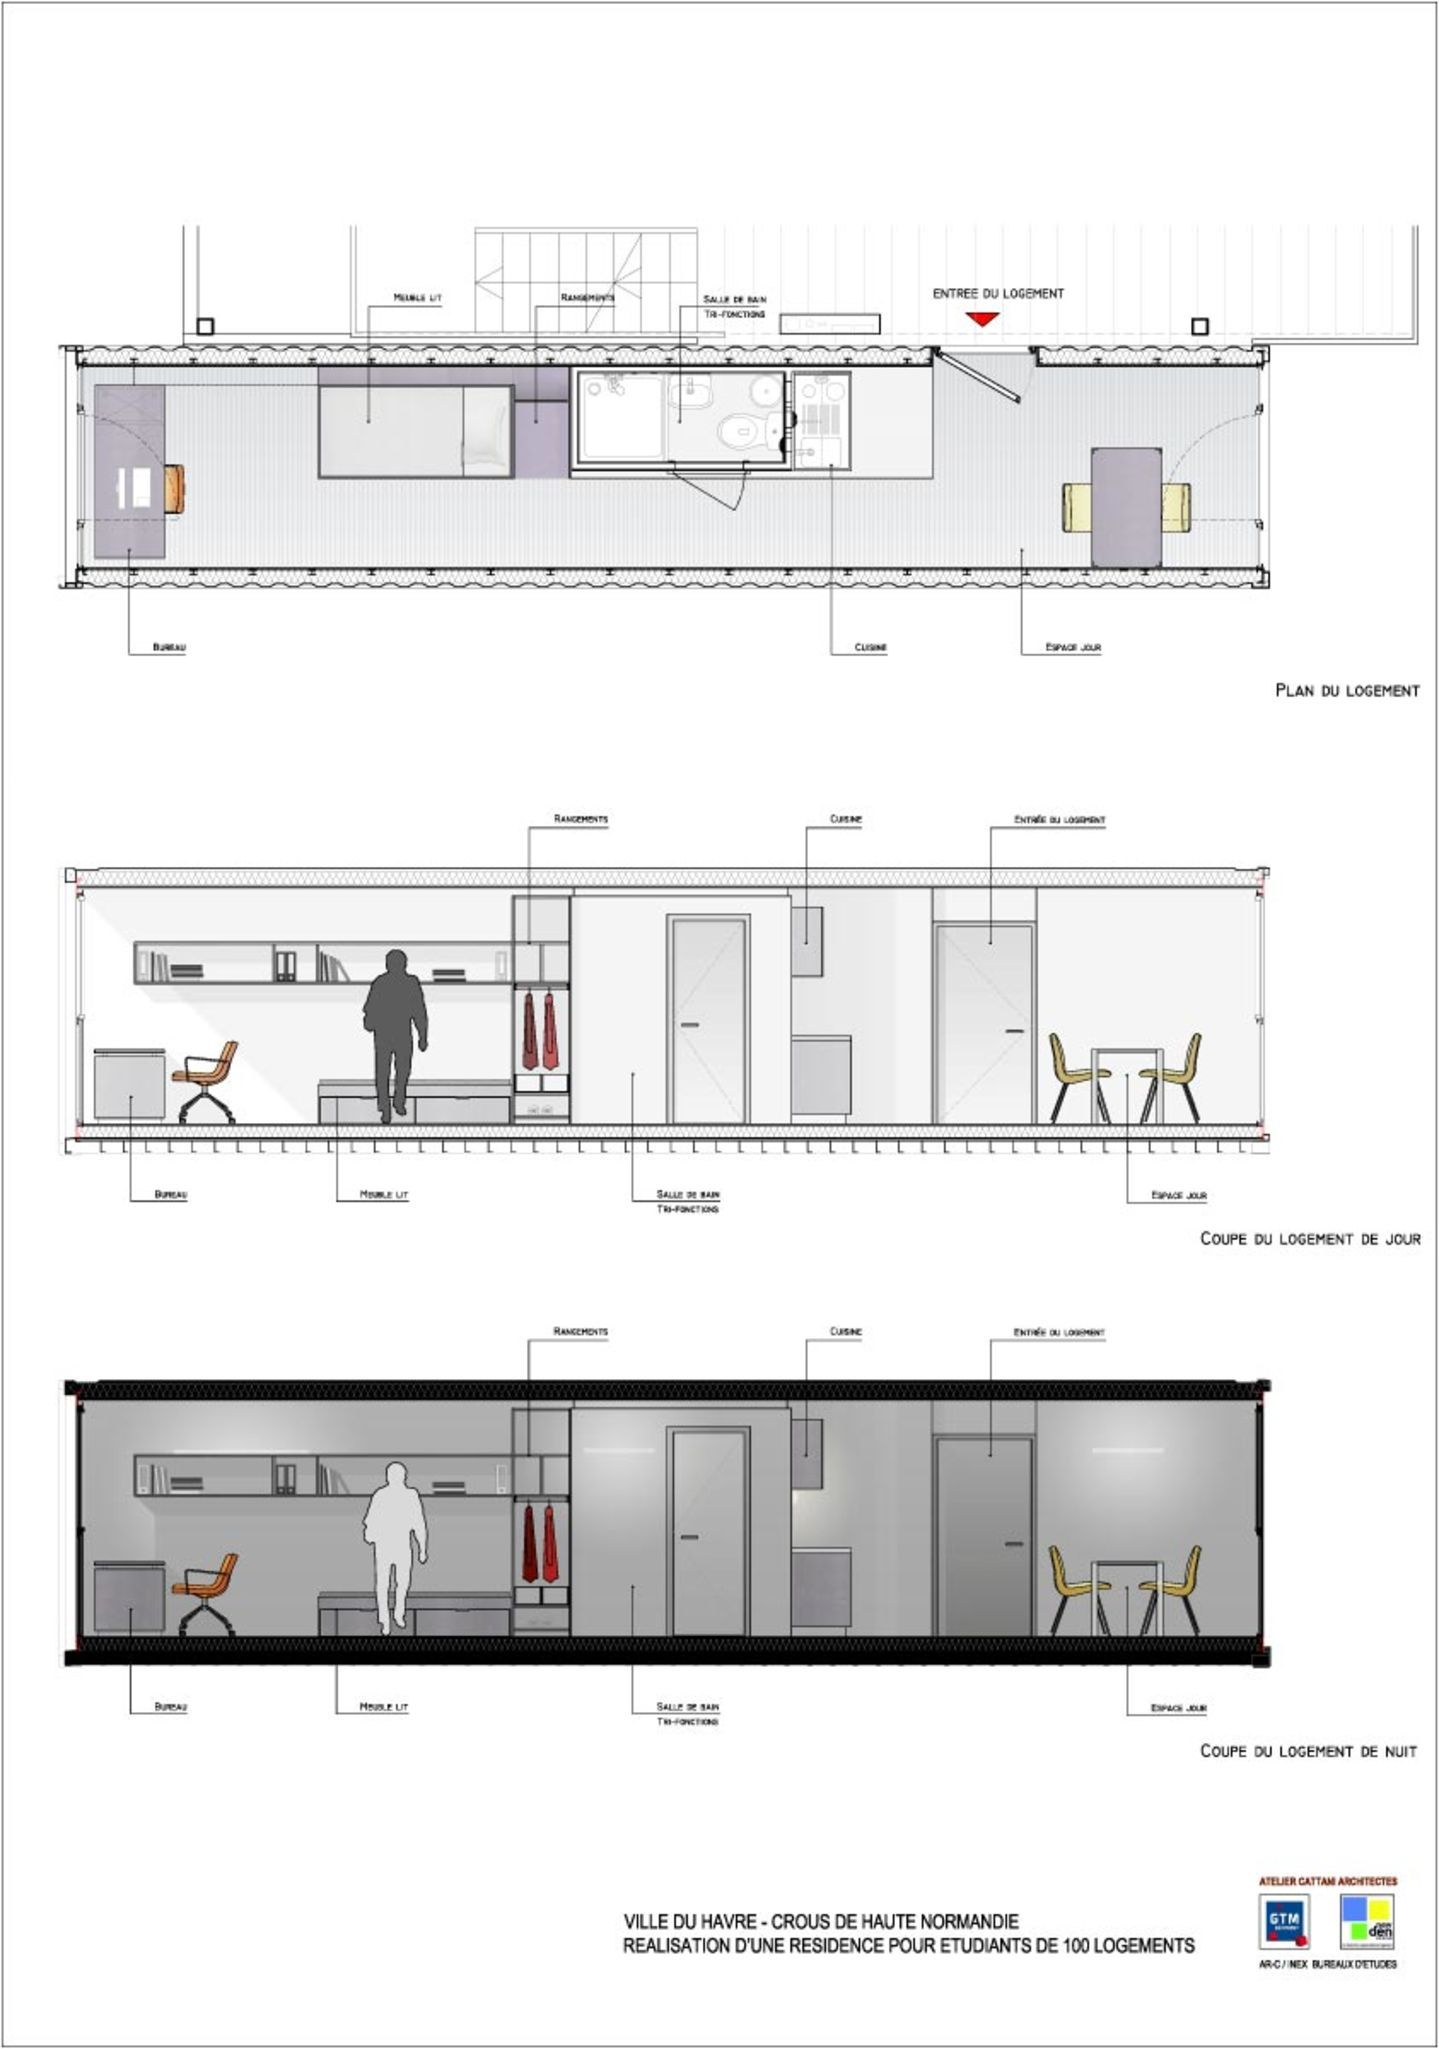 shipping container office plans. Completed Cité A Docks Student Housing Project, Located In Le Havre, France. The Consists Of 100 Apartments Made Out Old Shipping Containers. Container Office Plans